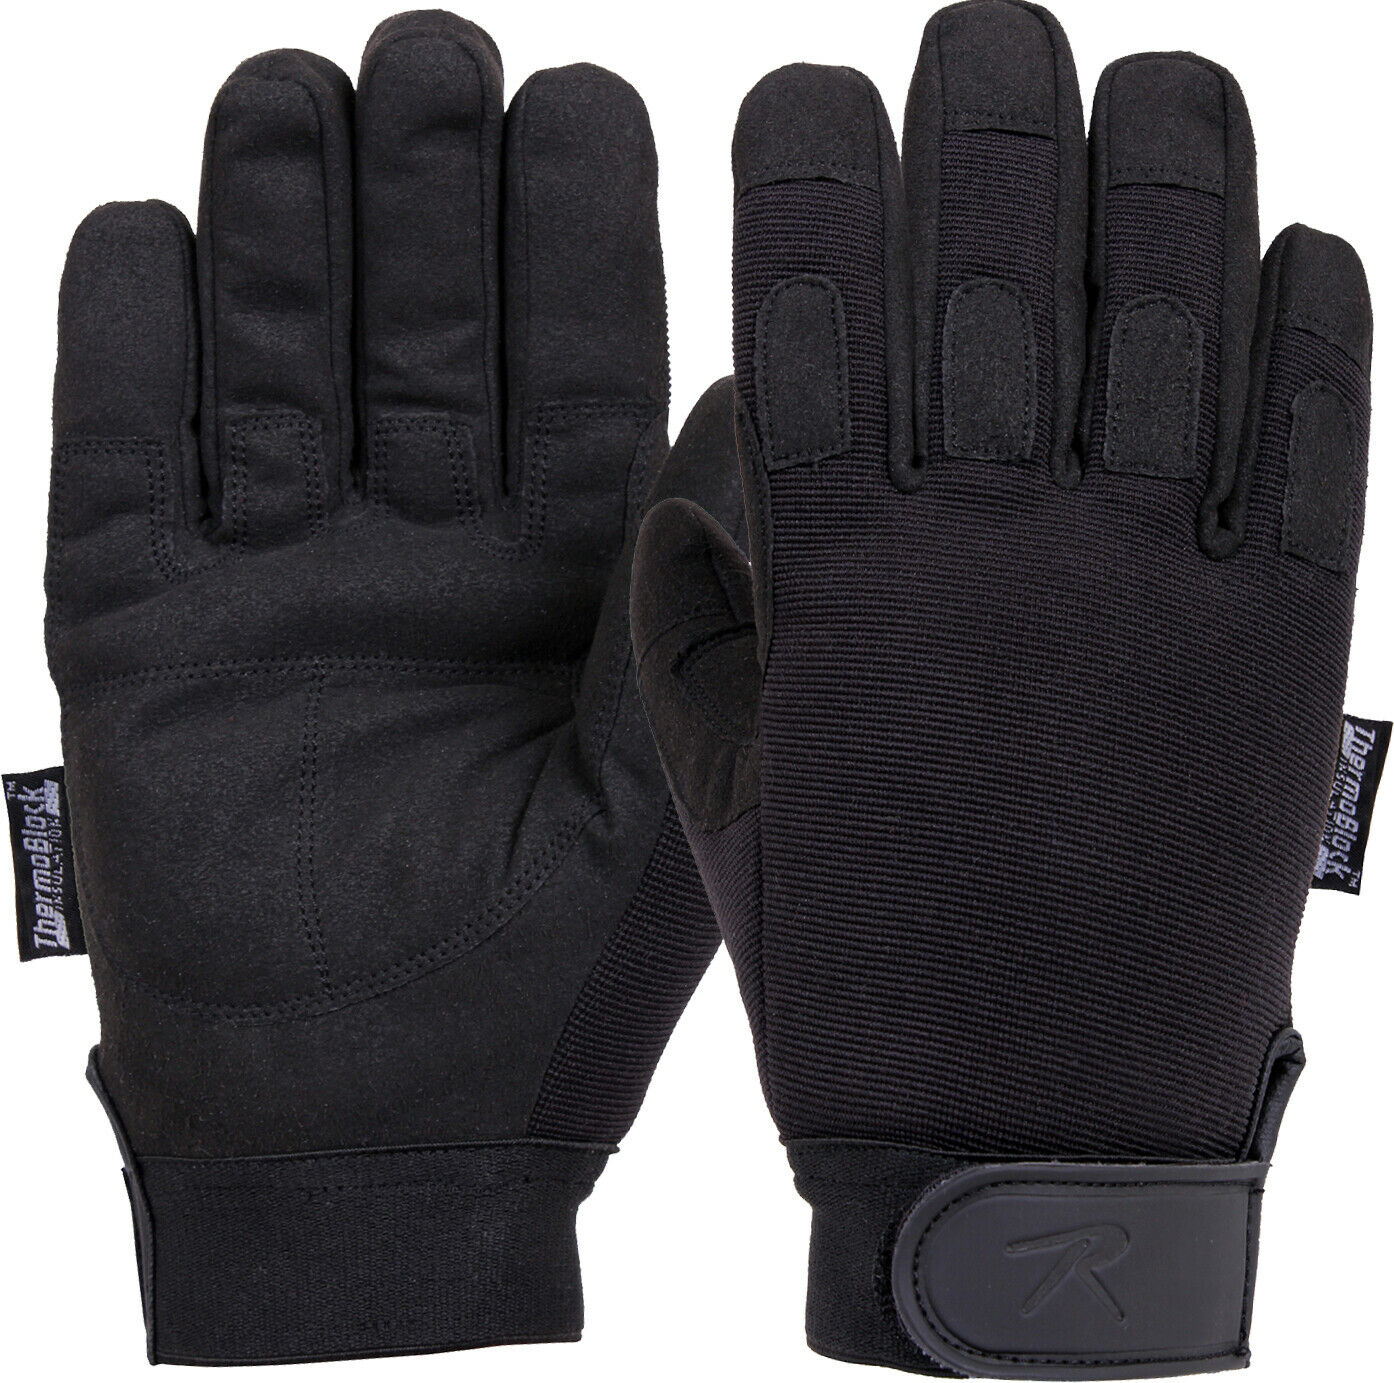 Black All Purpose Insulated Cold Weather Gloves